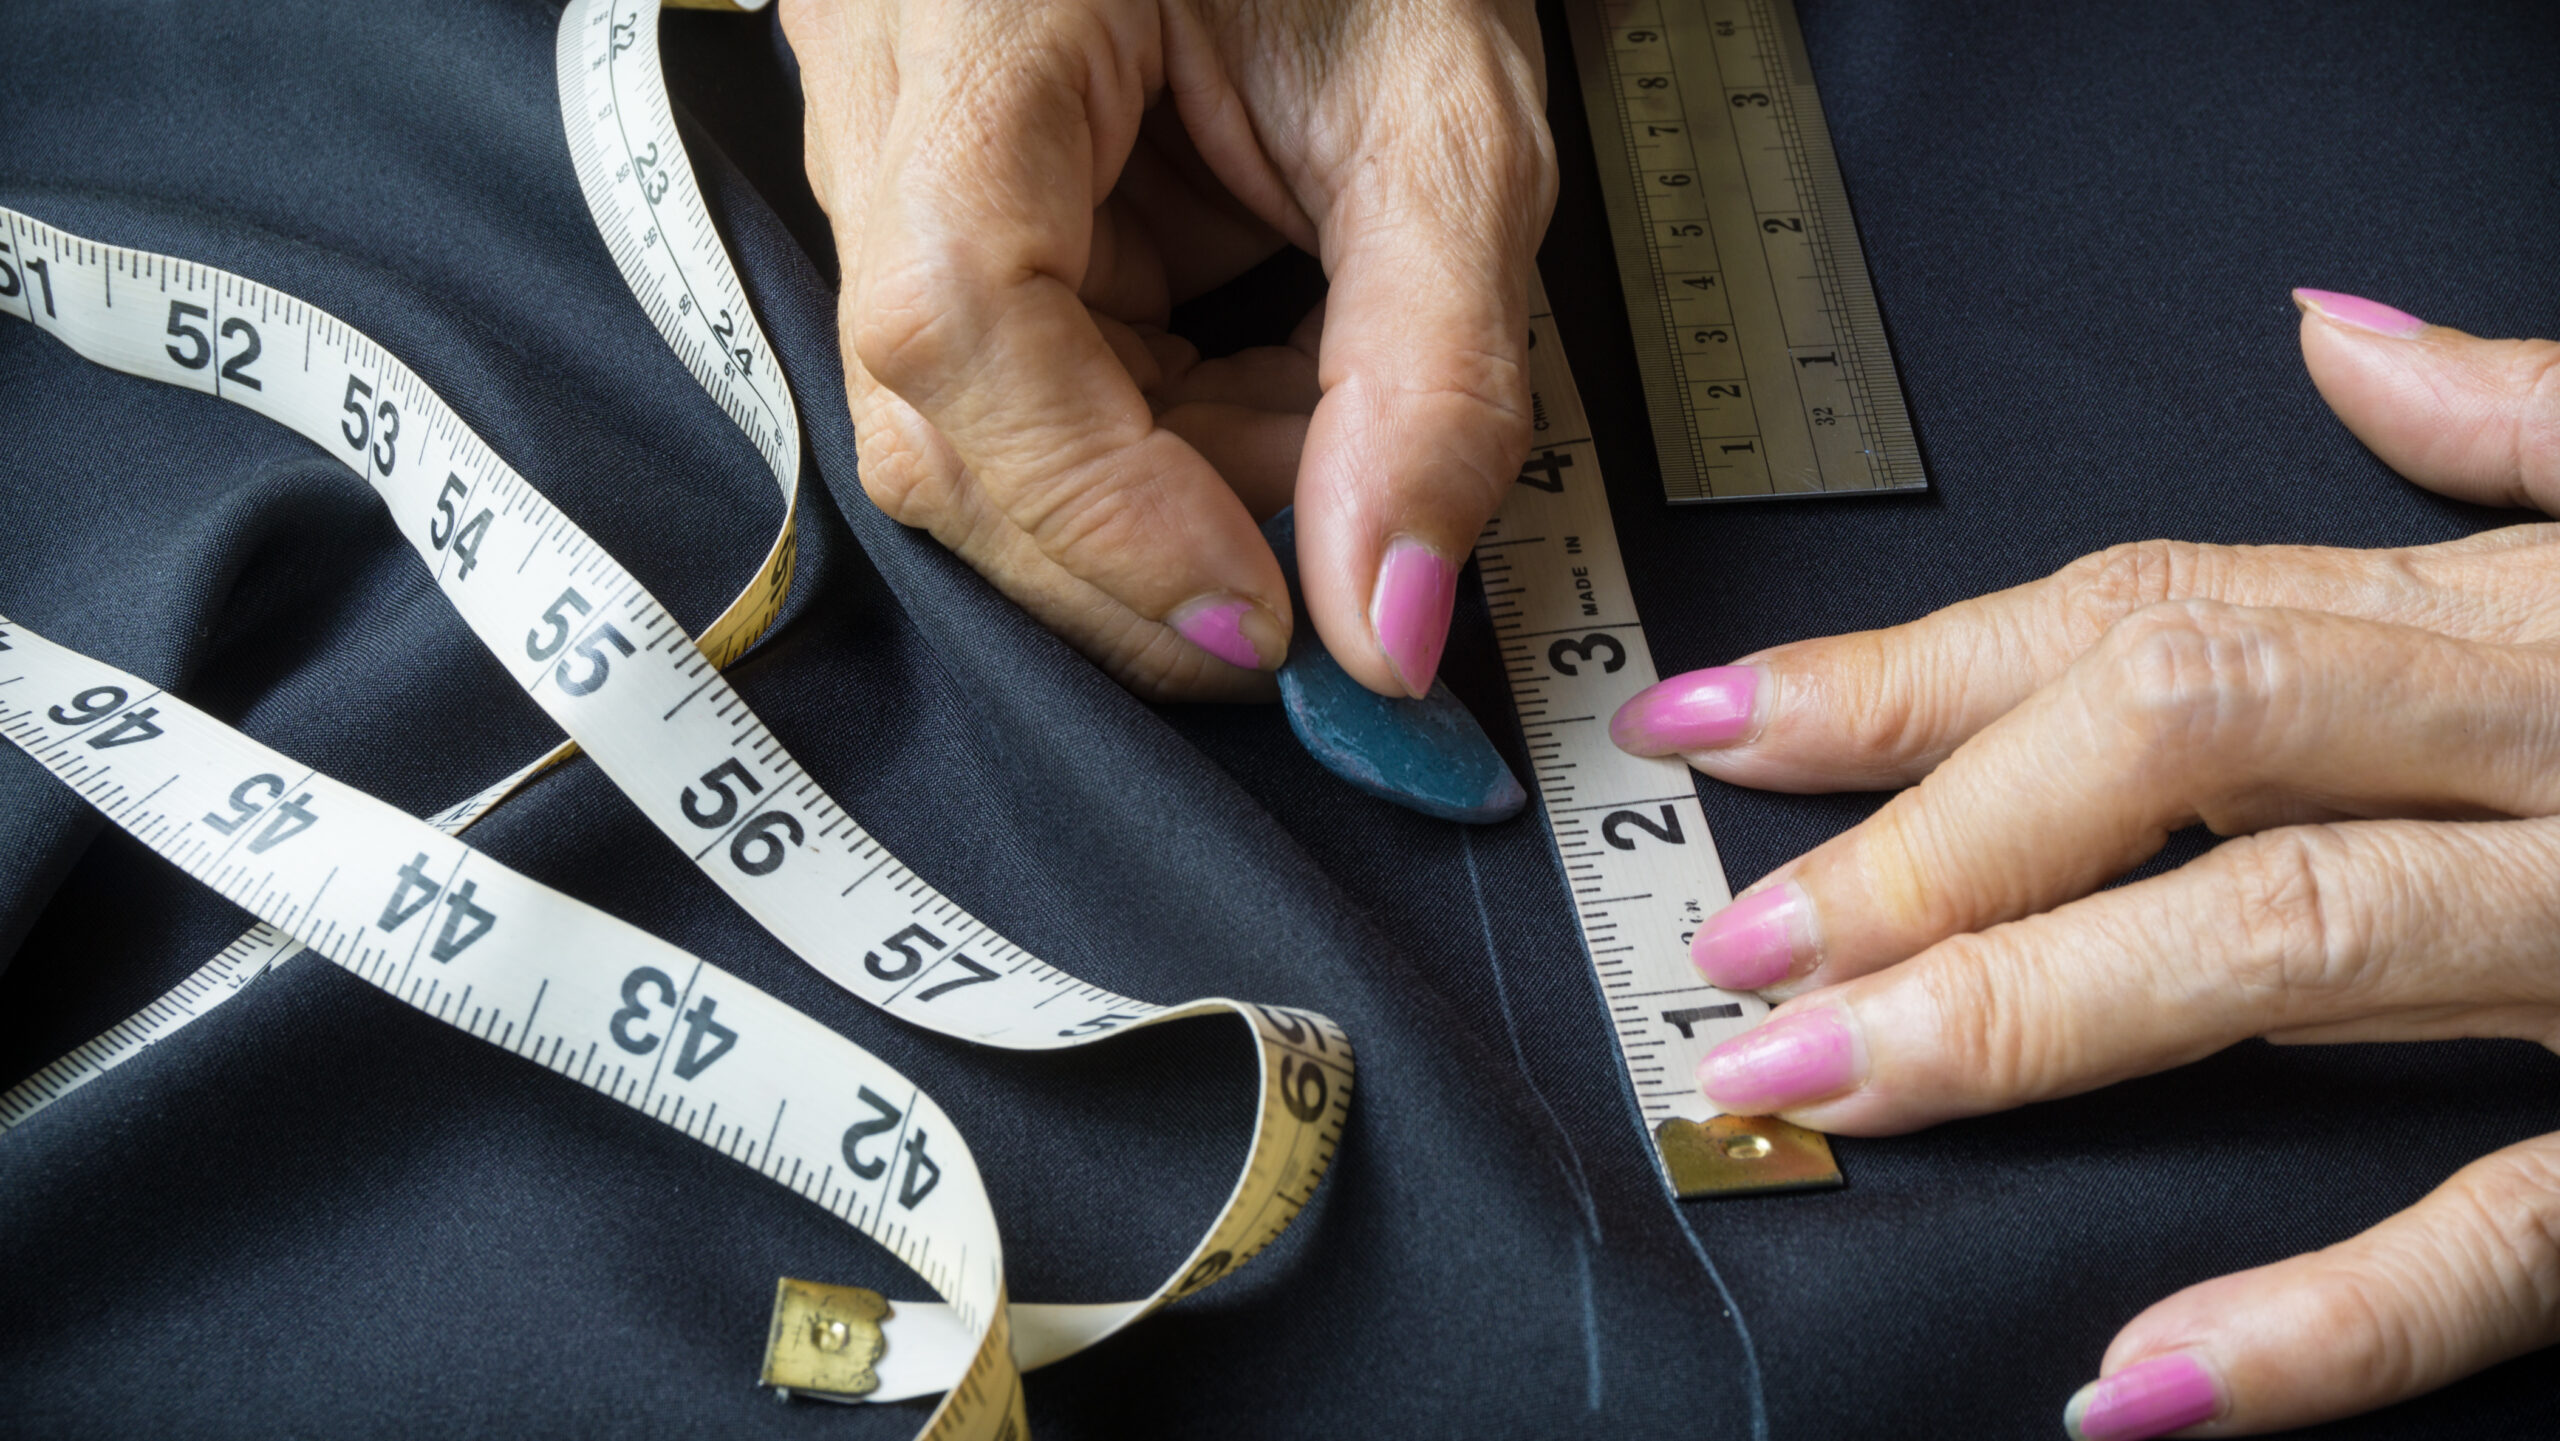 Sewing,Chalk,Marking,On,Black,Fabric,And,Measuring,Tape